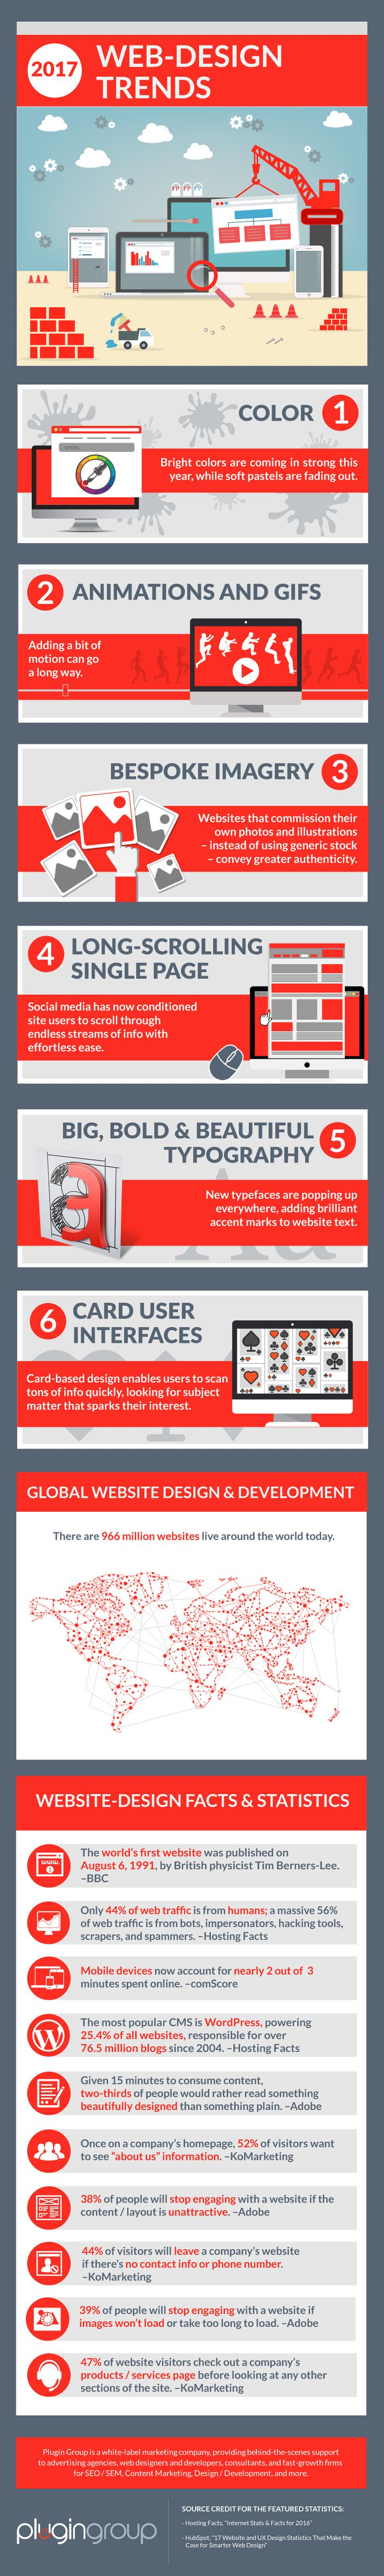 2017 Web-Design Trends #Infographic #WebDesign